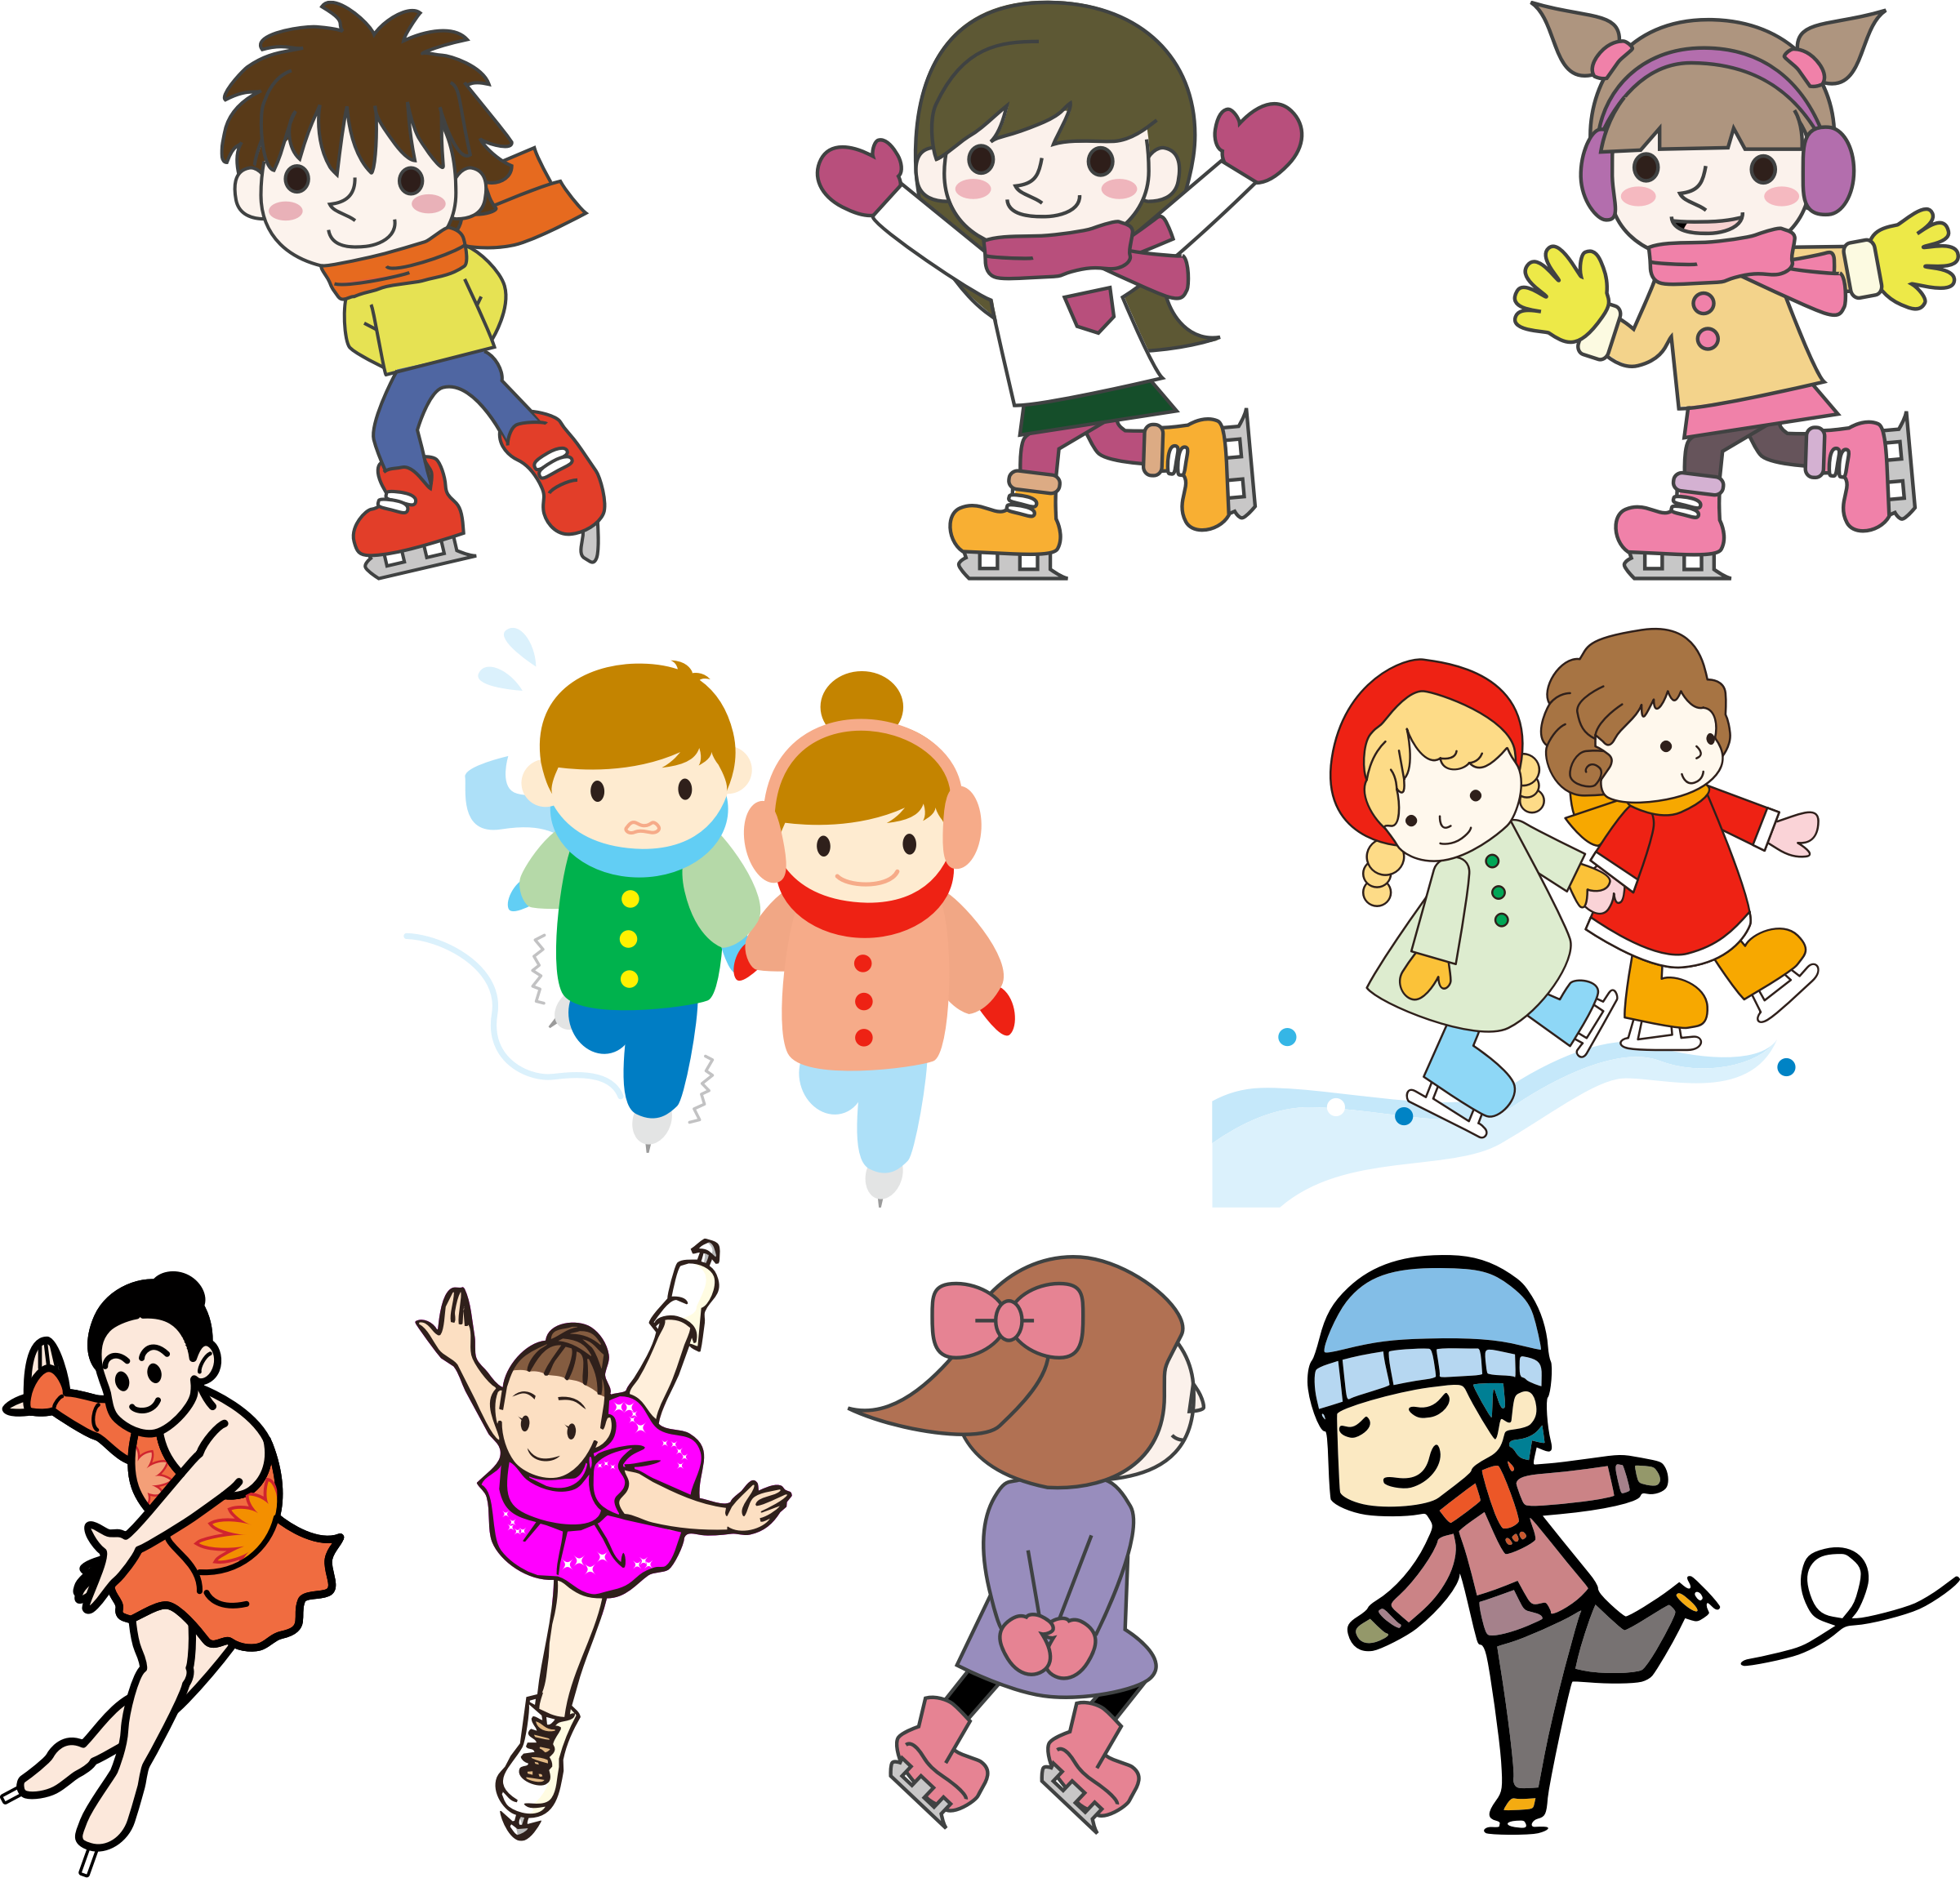 Kids Ice Skating In Nature Royalty Free Cliparts, Vectors, And Stock  Illustration. Image 24080700.